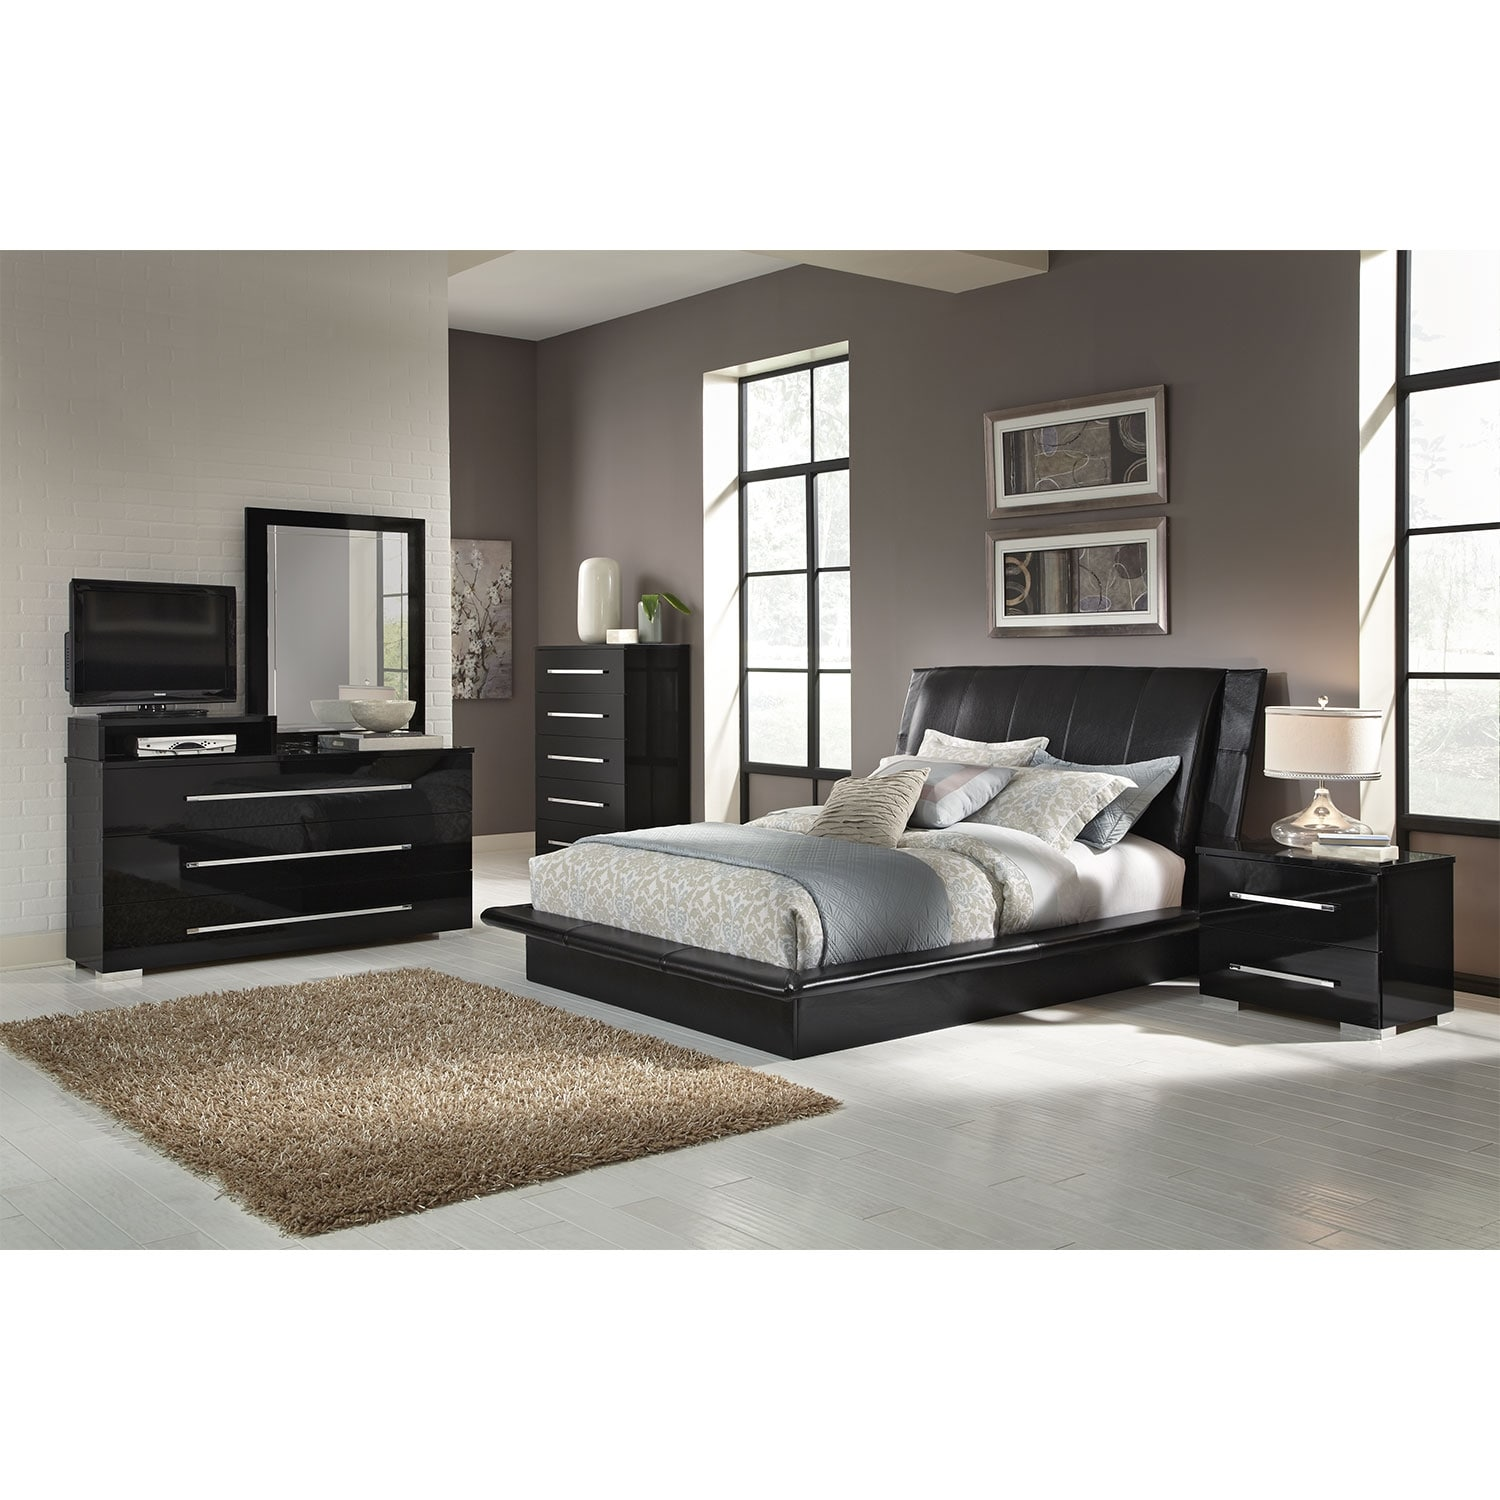 bedroom sets value city dimora 7 upholstered bedroom set with media 14422